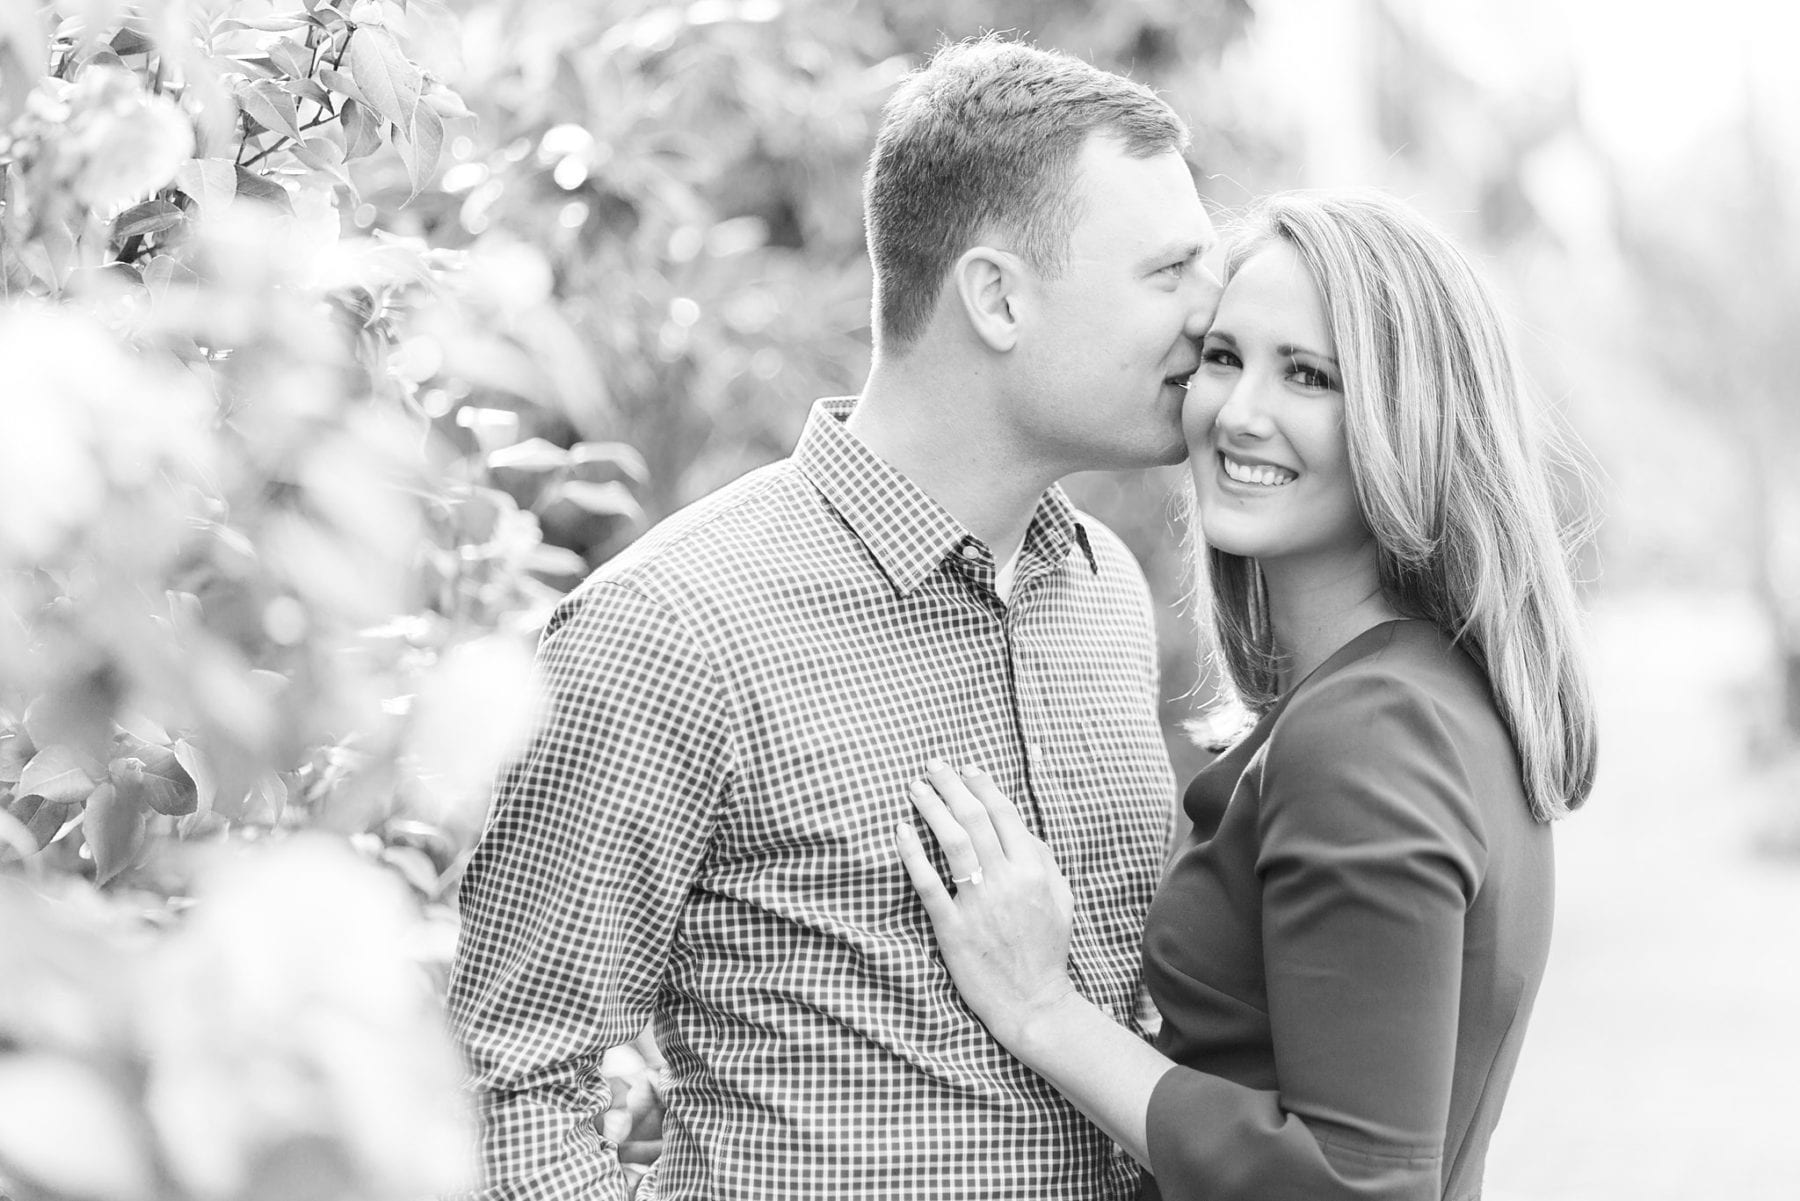 Springtime Old Town Alexandria Engagement Session Matt & Maxie Megan Kelsey Photography-25.jpg